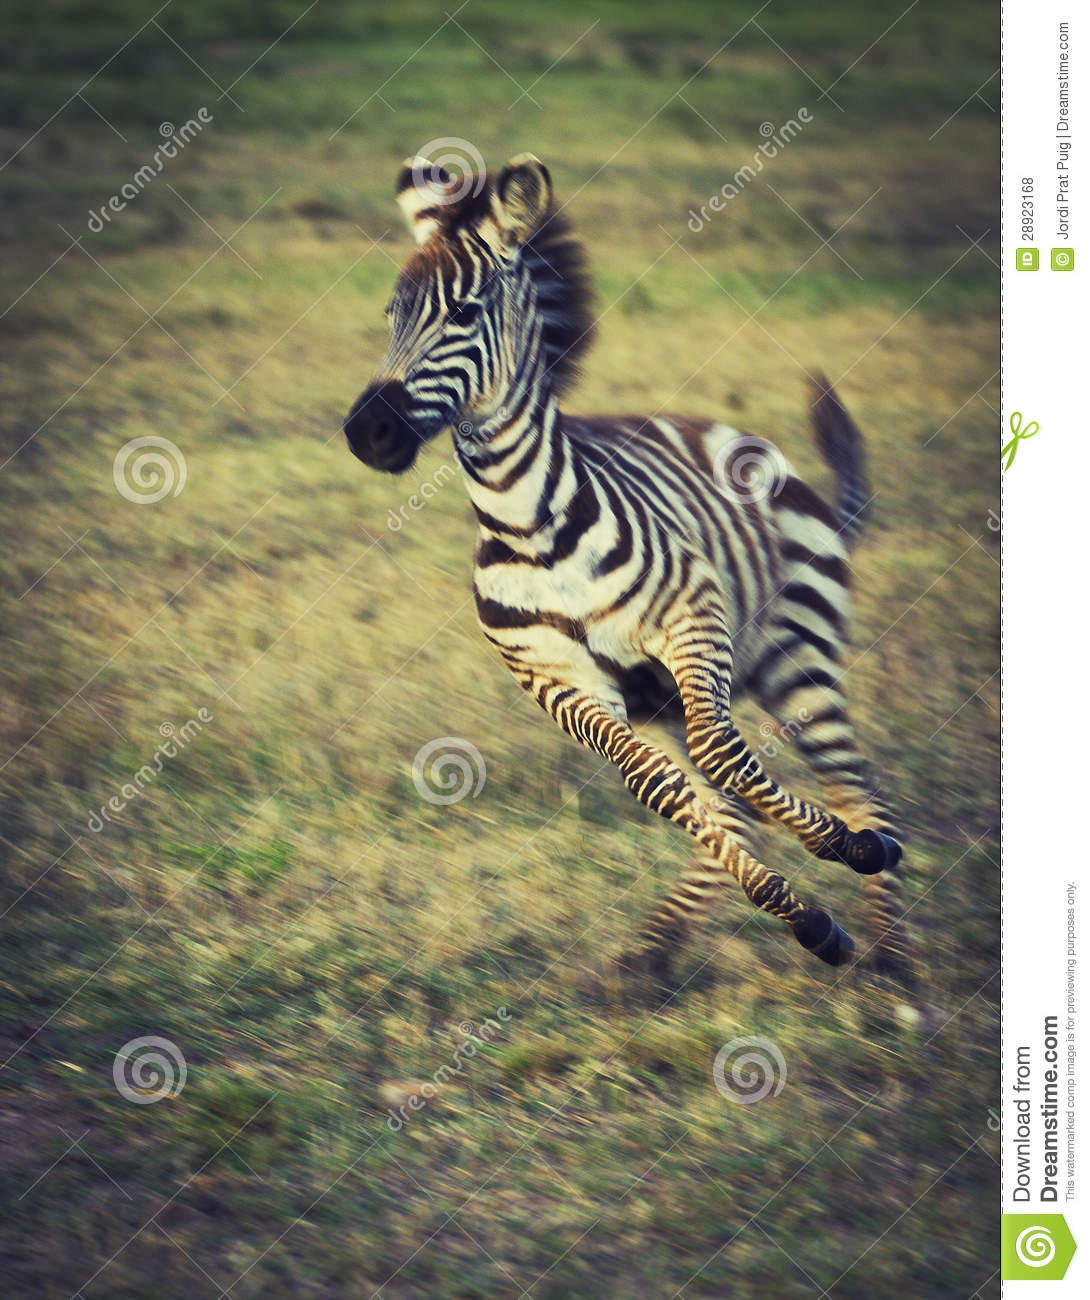 Sweet twins royalty free stock photo image 10320675 - Baby Zebras Playing